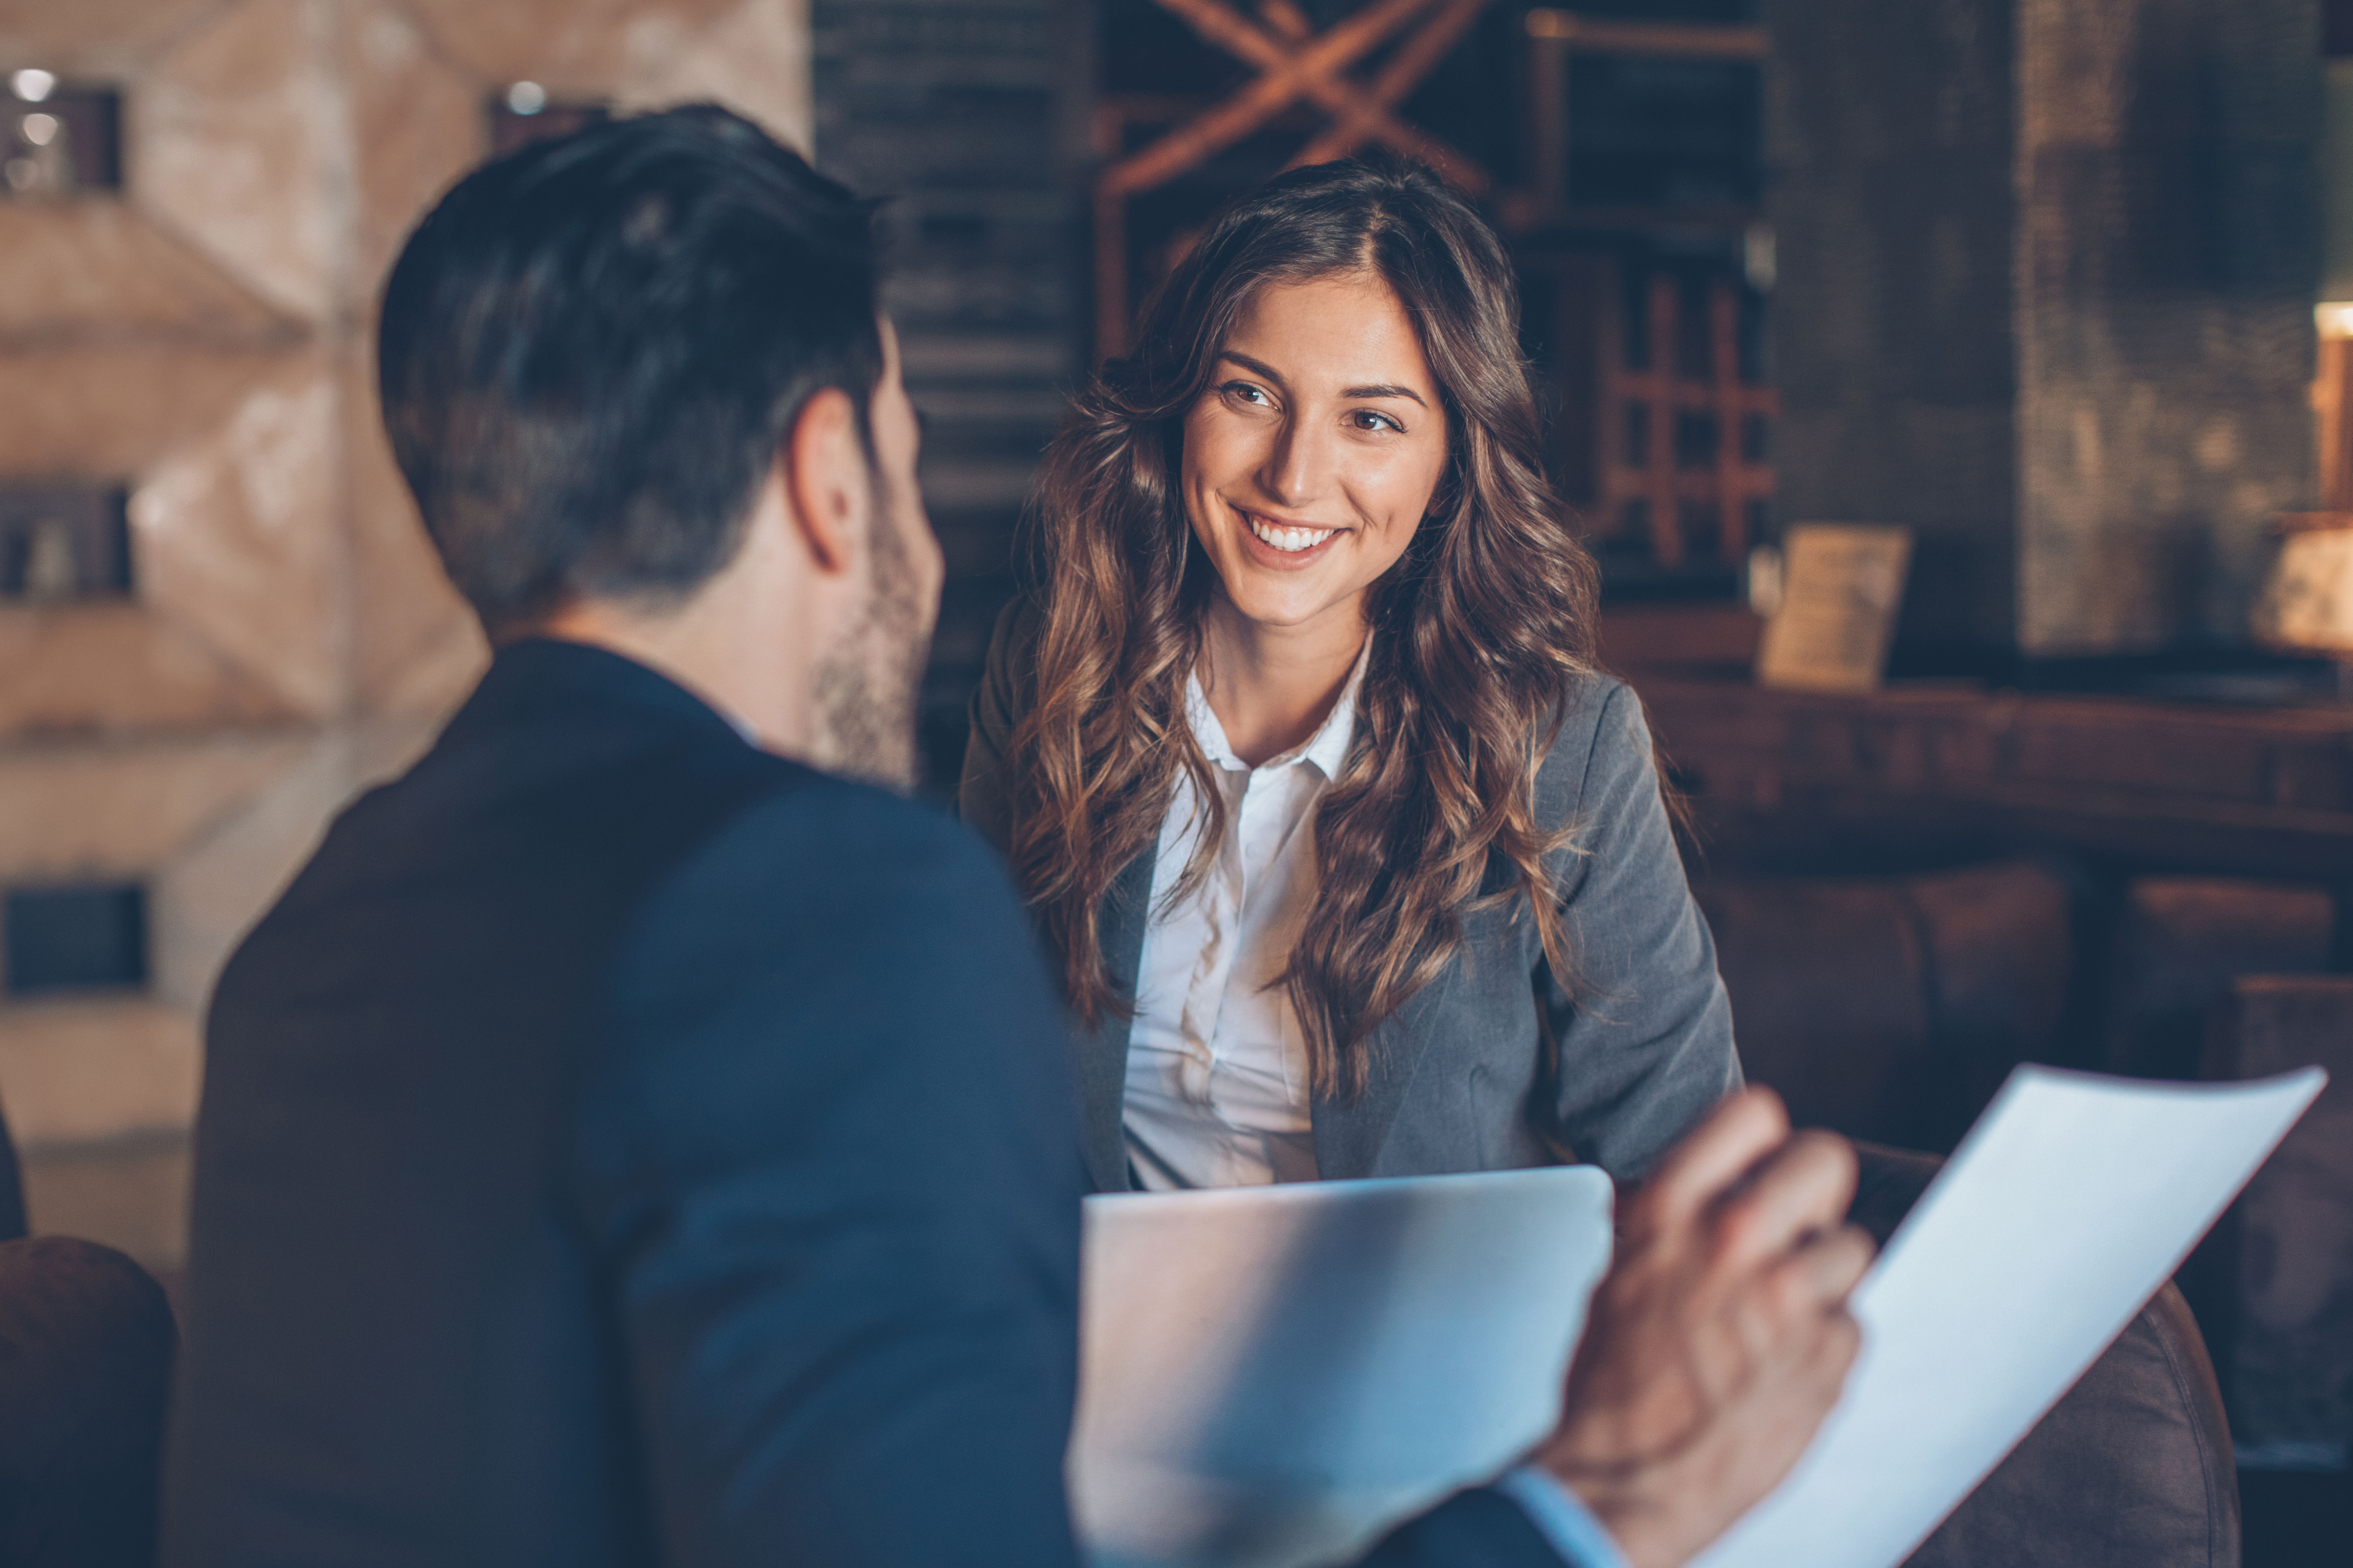 List of Interview Questions About Integrity | Chron com